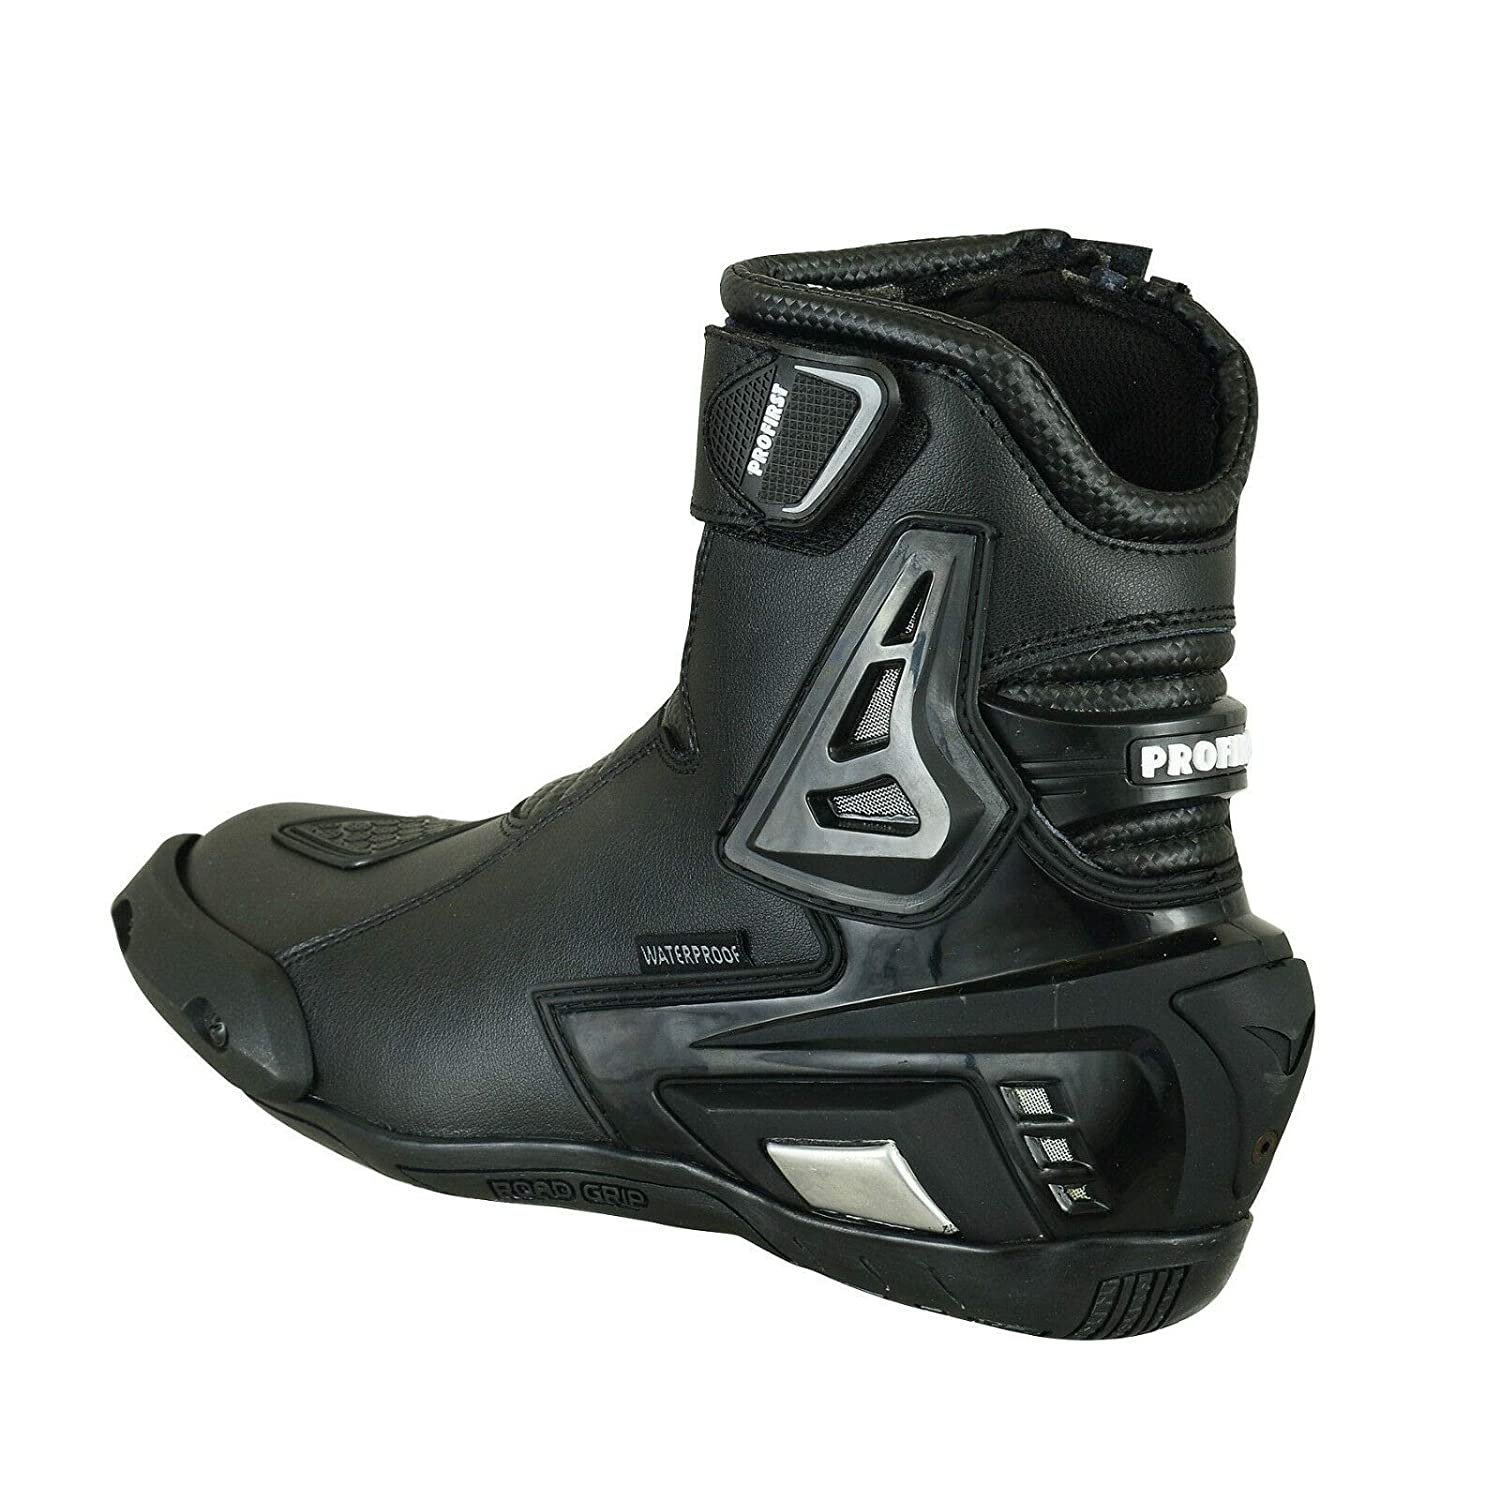 Pro First Genuine Leather Motorbike Armoured Boots Motorcycle Short Ankle Protection Boot Shoes Anti Slip Racing Sports UK 7//EU 41 Full Black